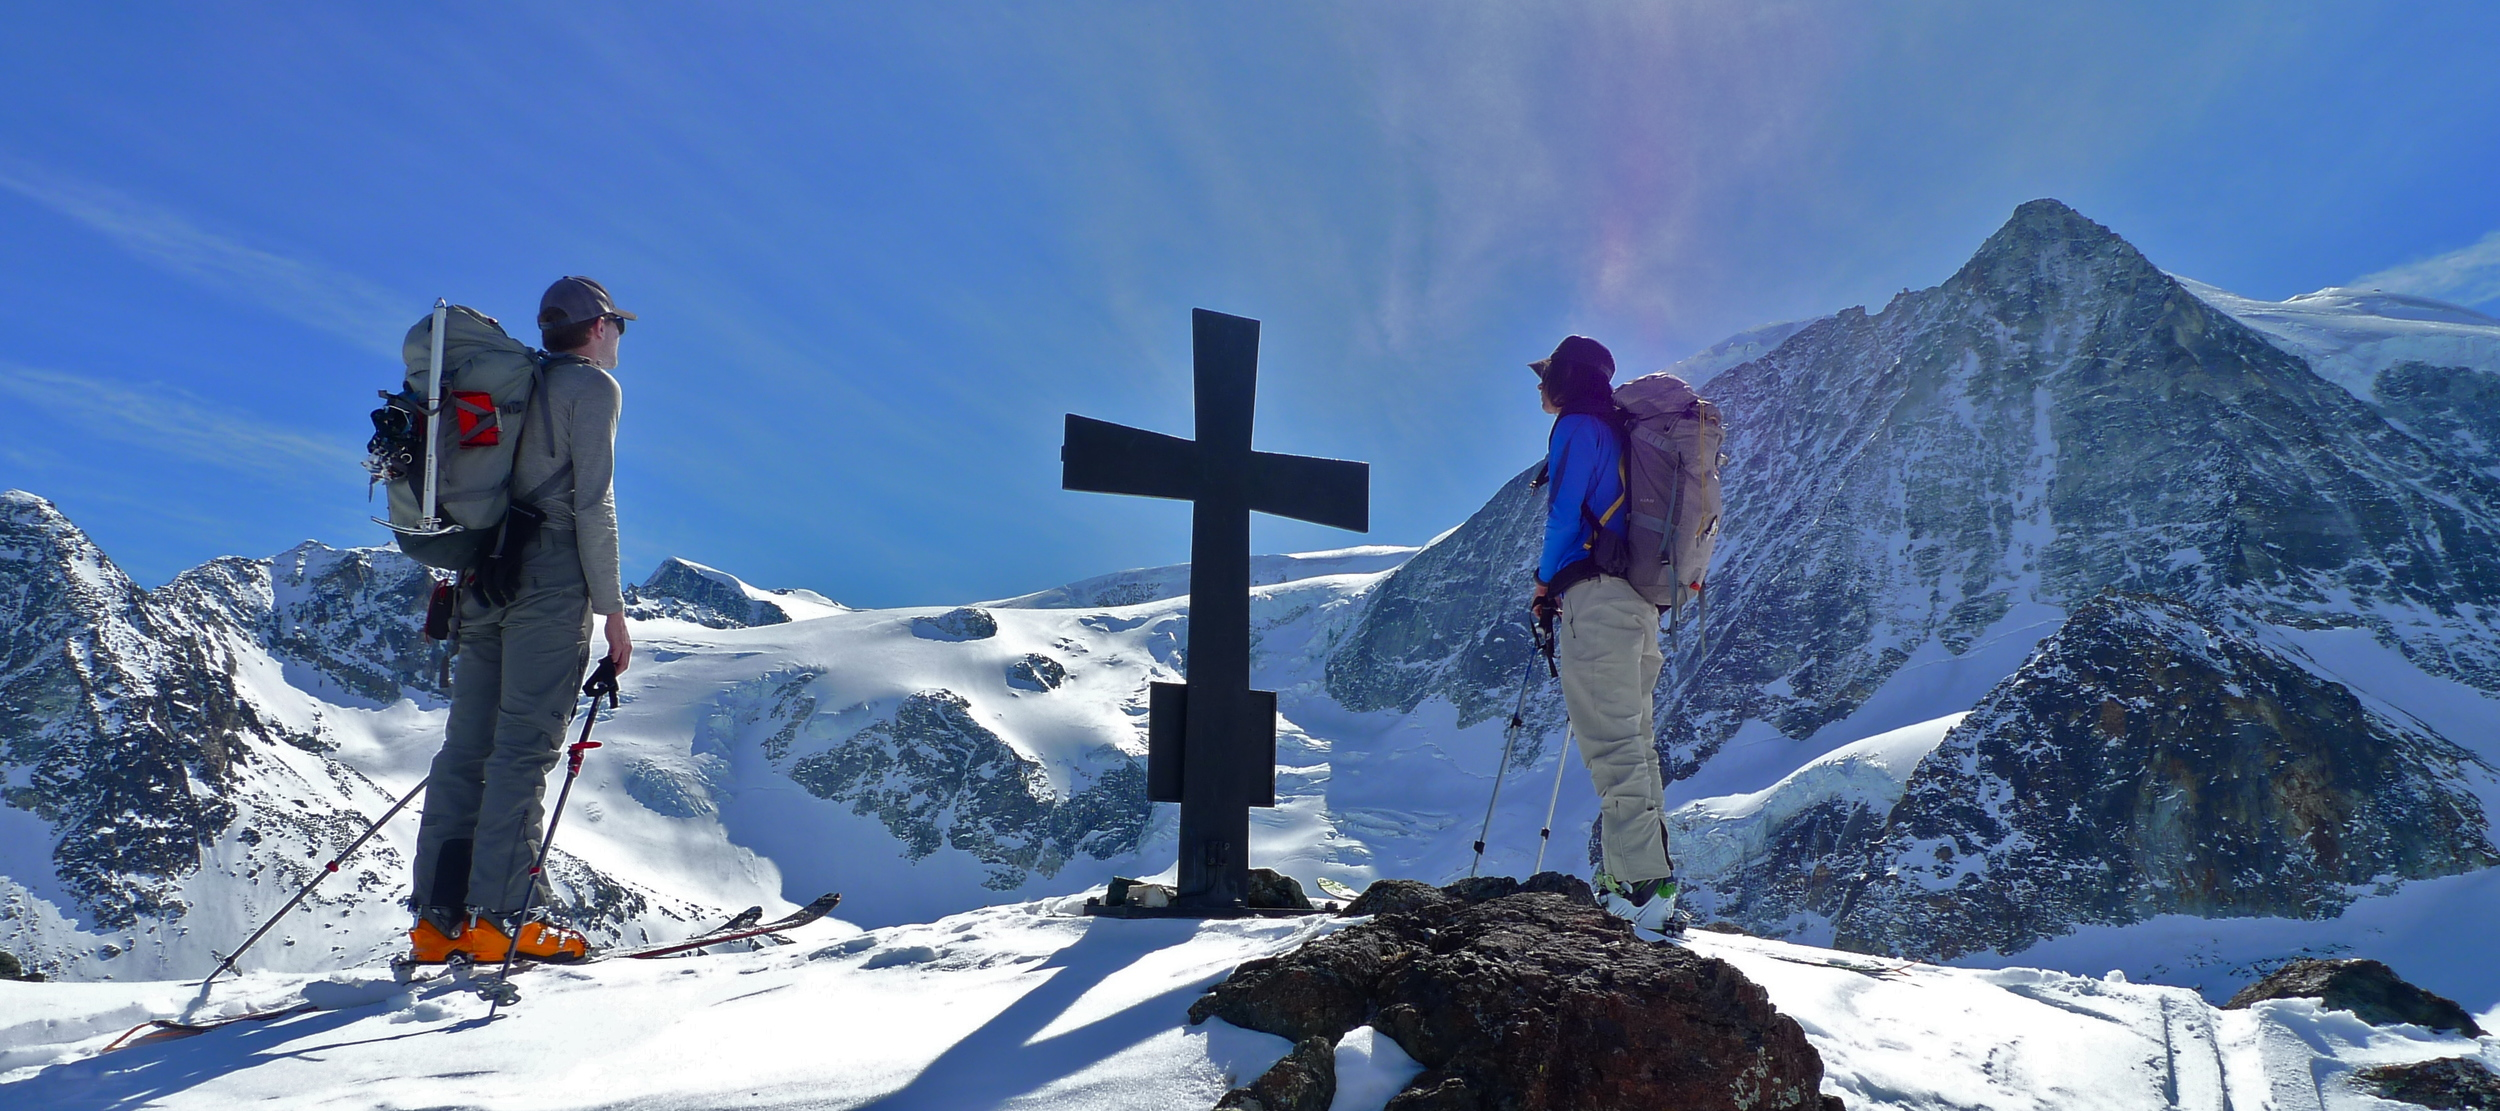 Day 4: Looking up at Mt. Blanc de Cheillon